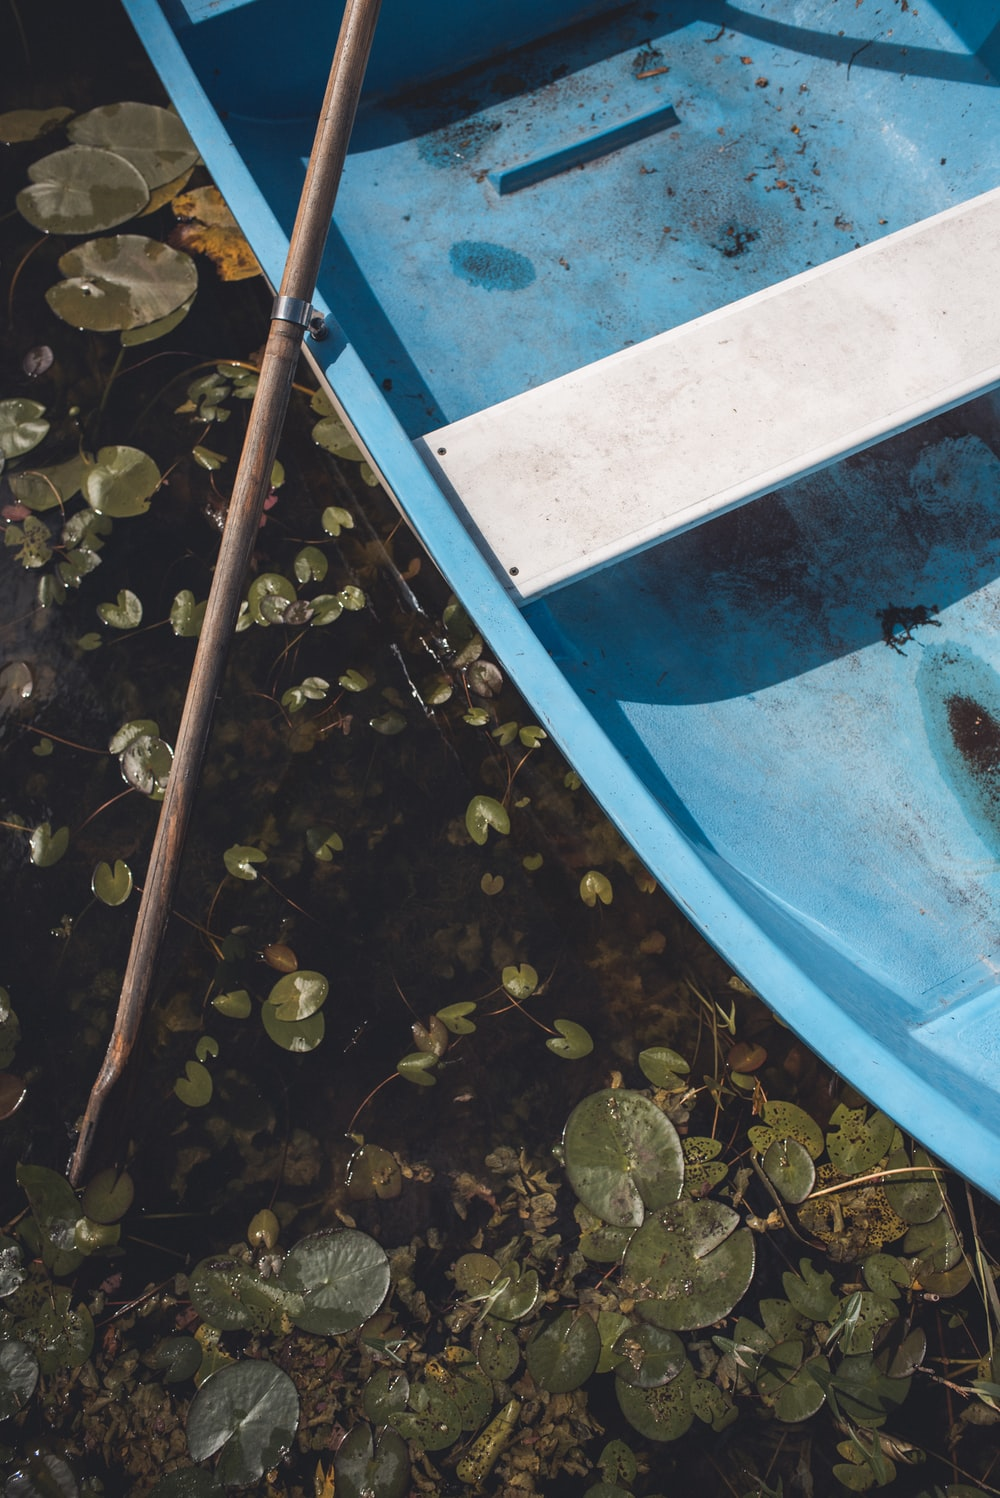 blue boat on body of water during day time